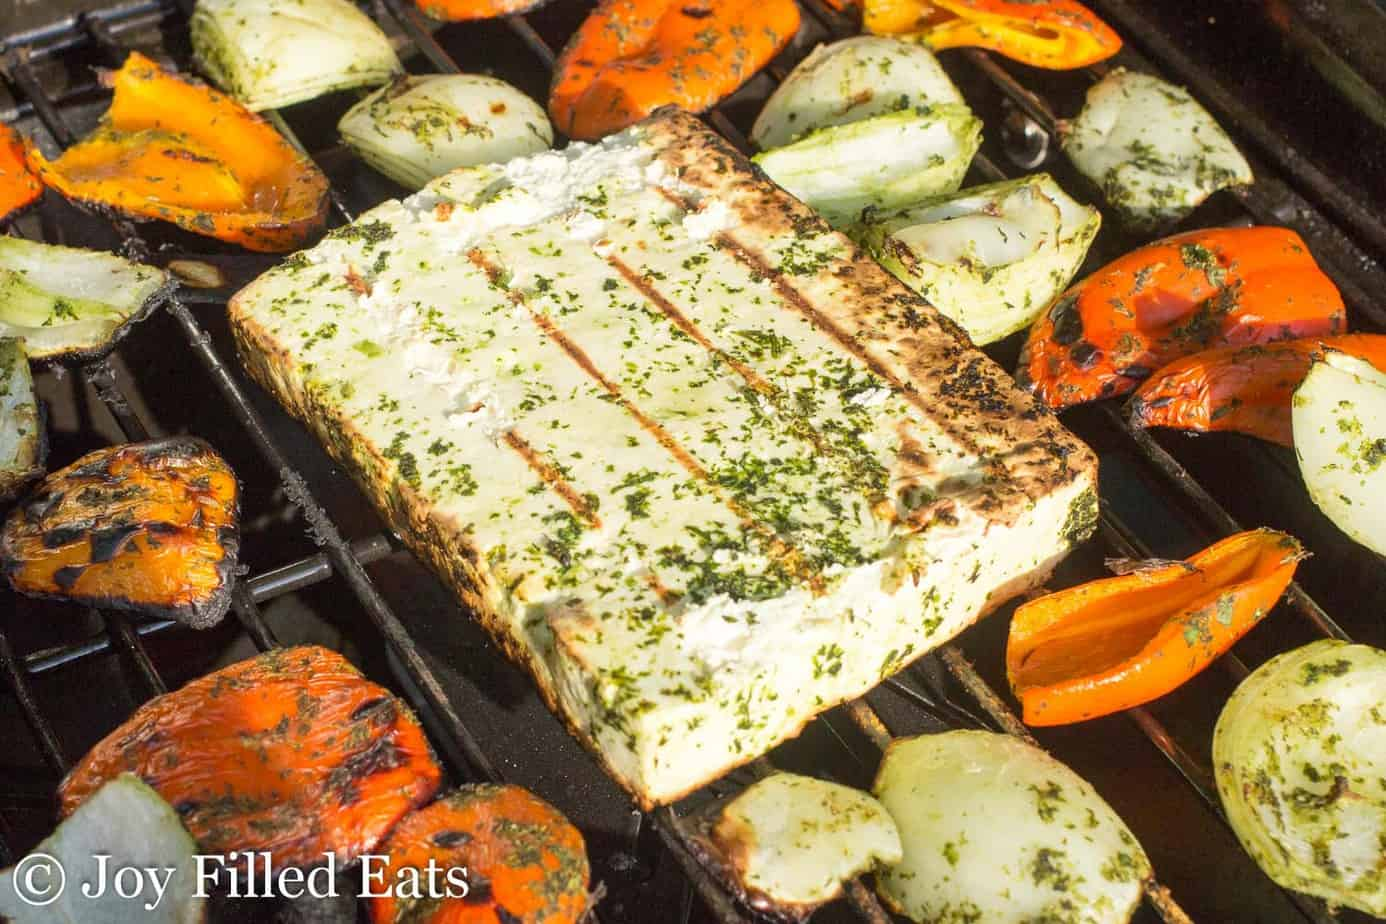 Grilling paneer cheese and veggies